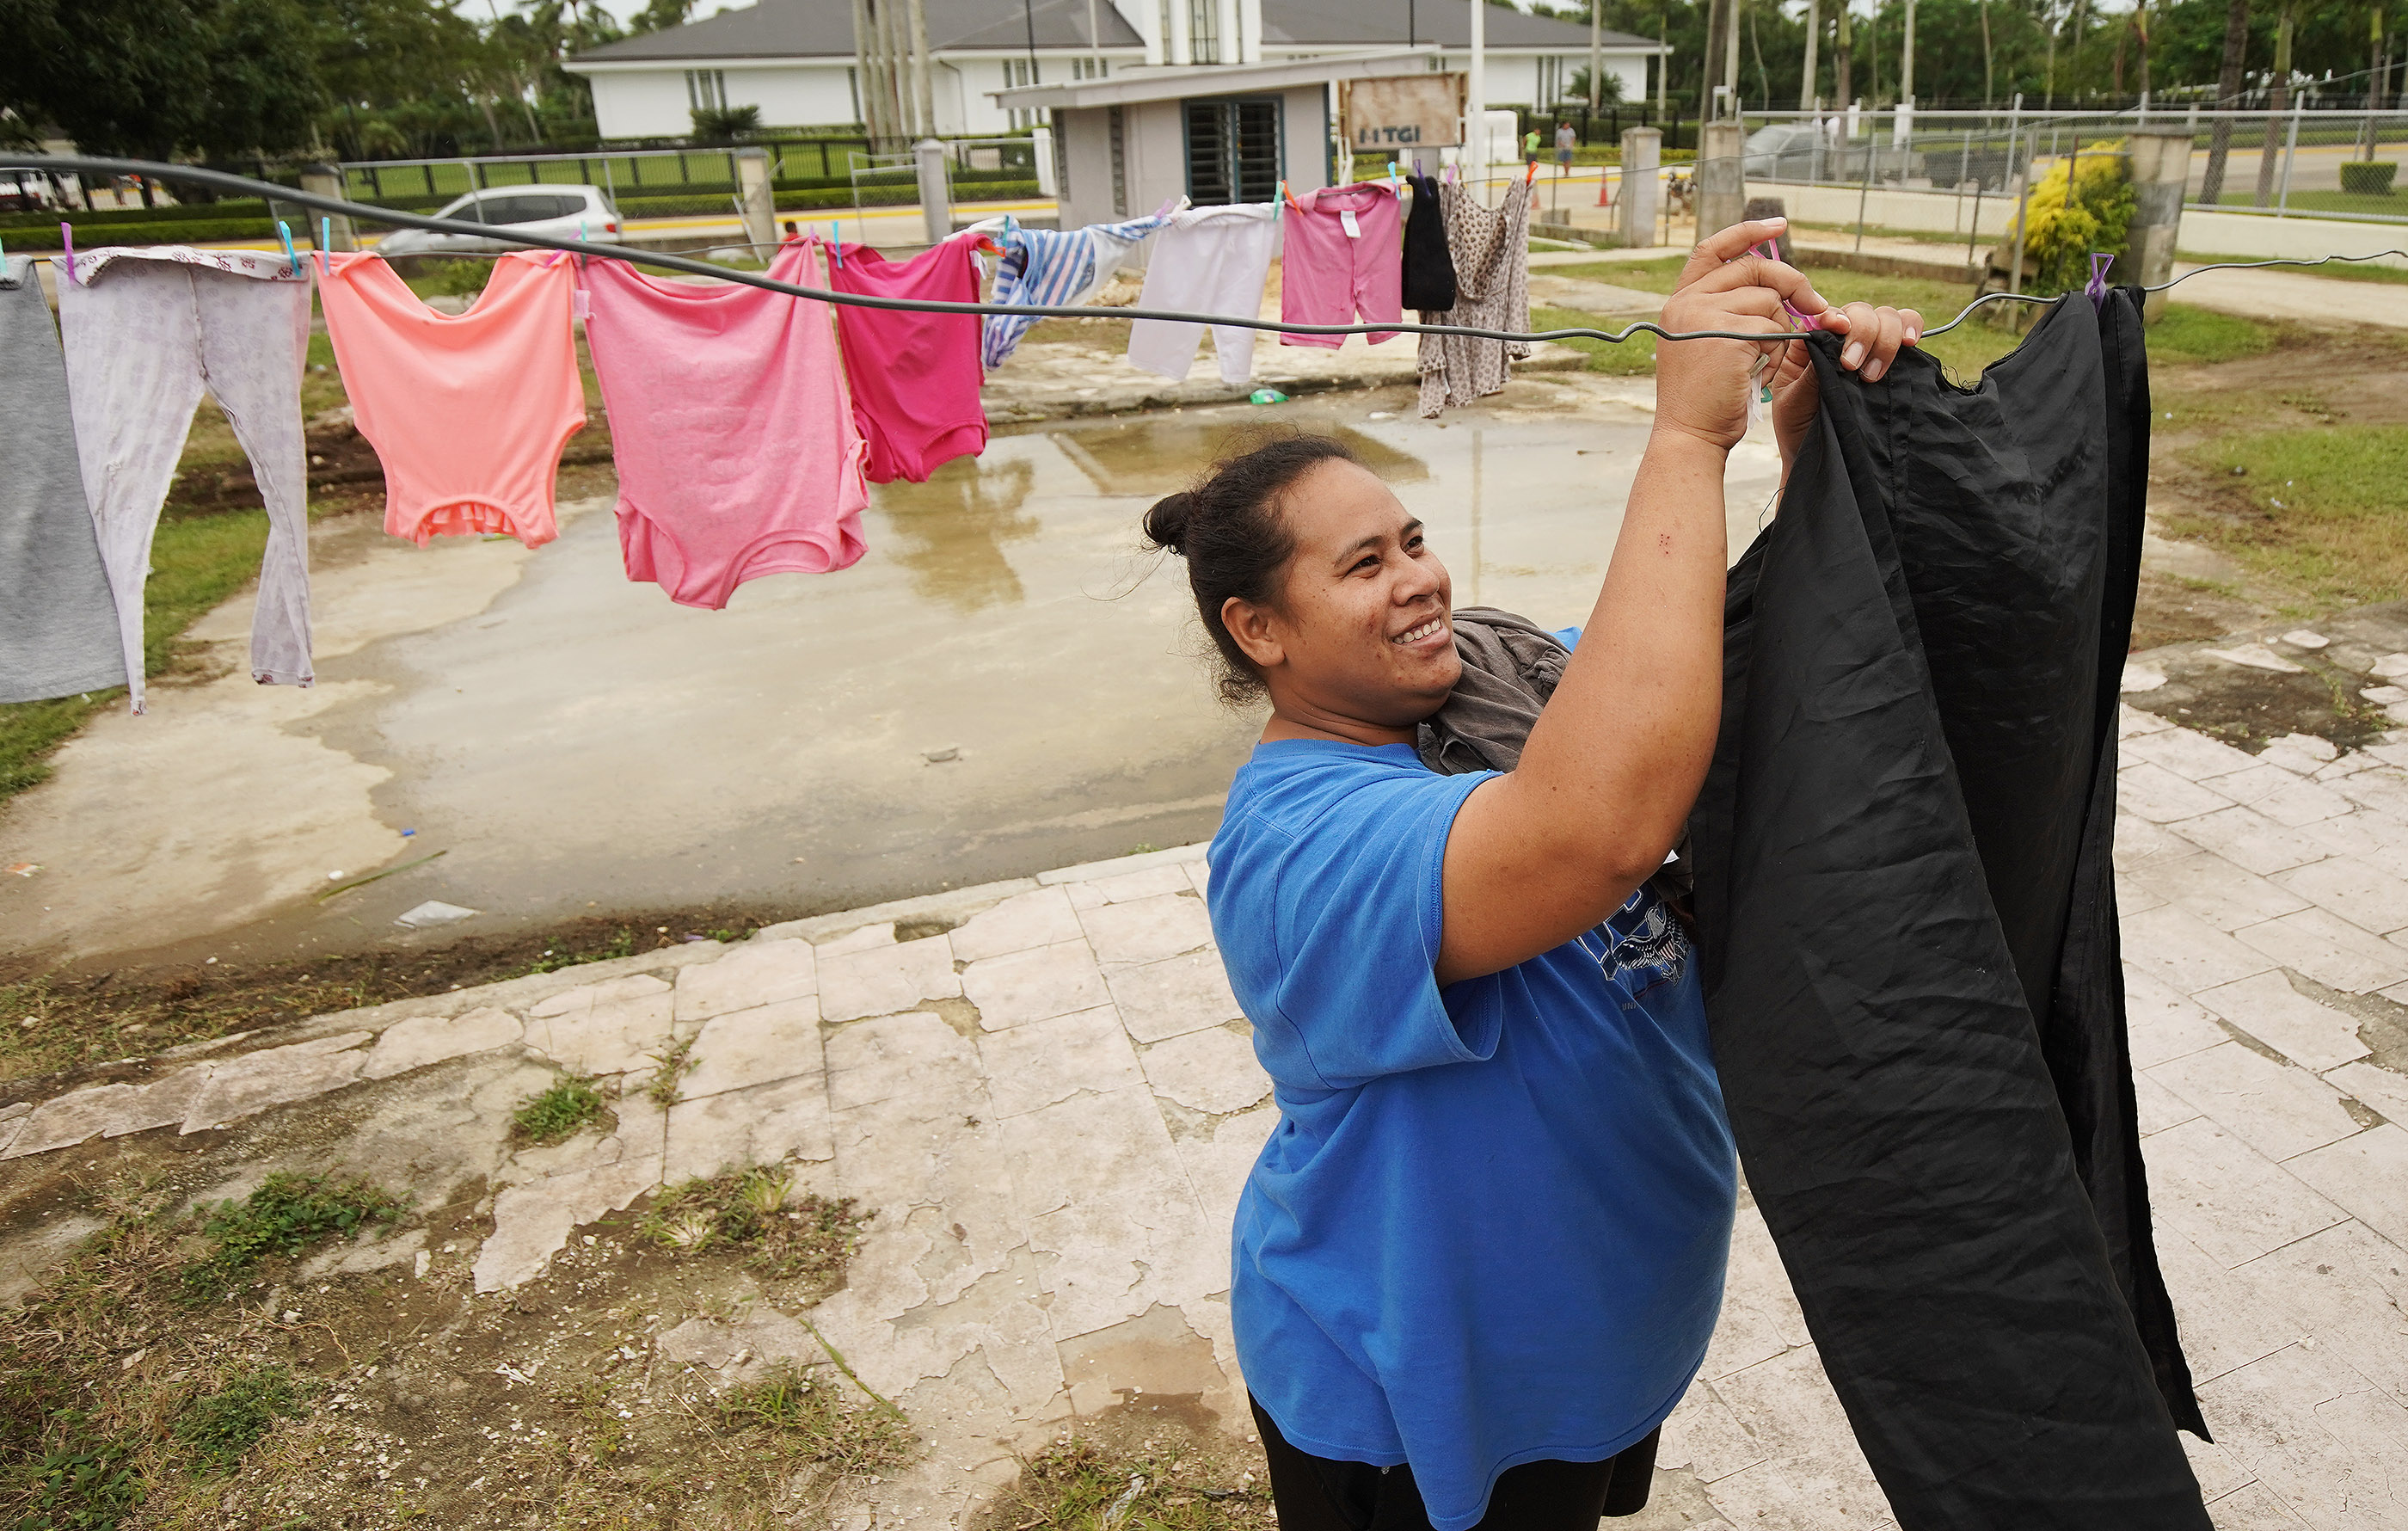 A woman hangs laundry in Tonga on May 23, 2019.